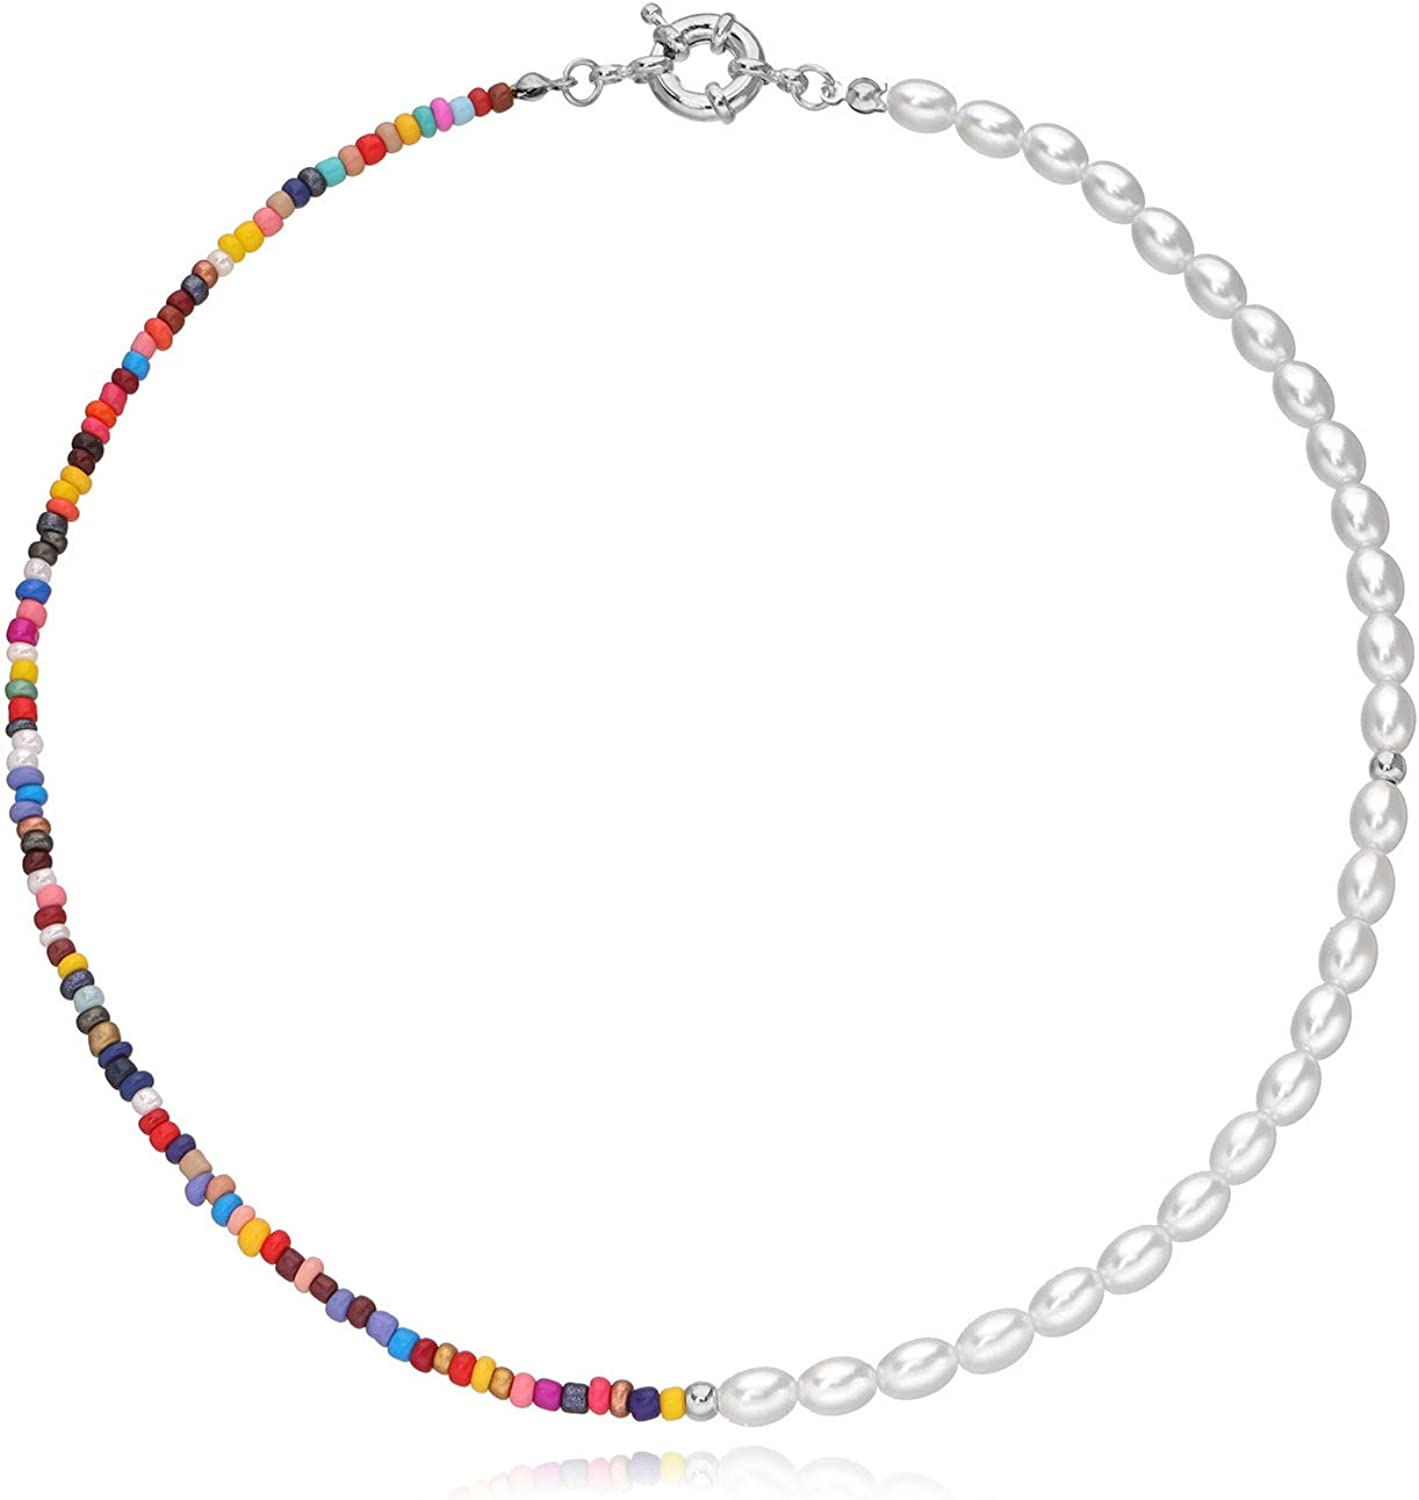 Bead Pearl Choker Necklace for Women Girls Handmade Colorful Seed Beaded Choker for Women Jewelry